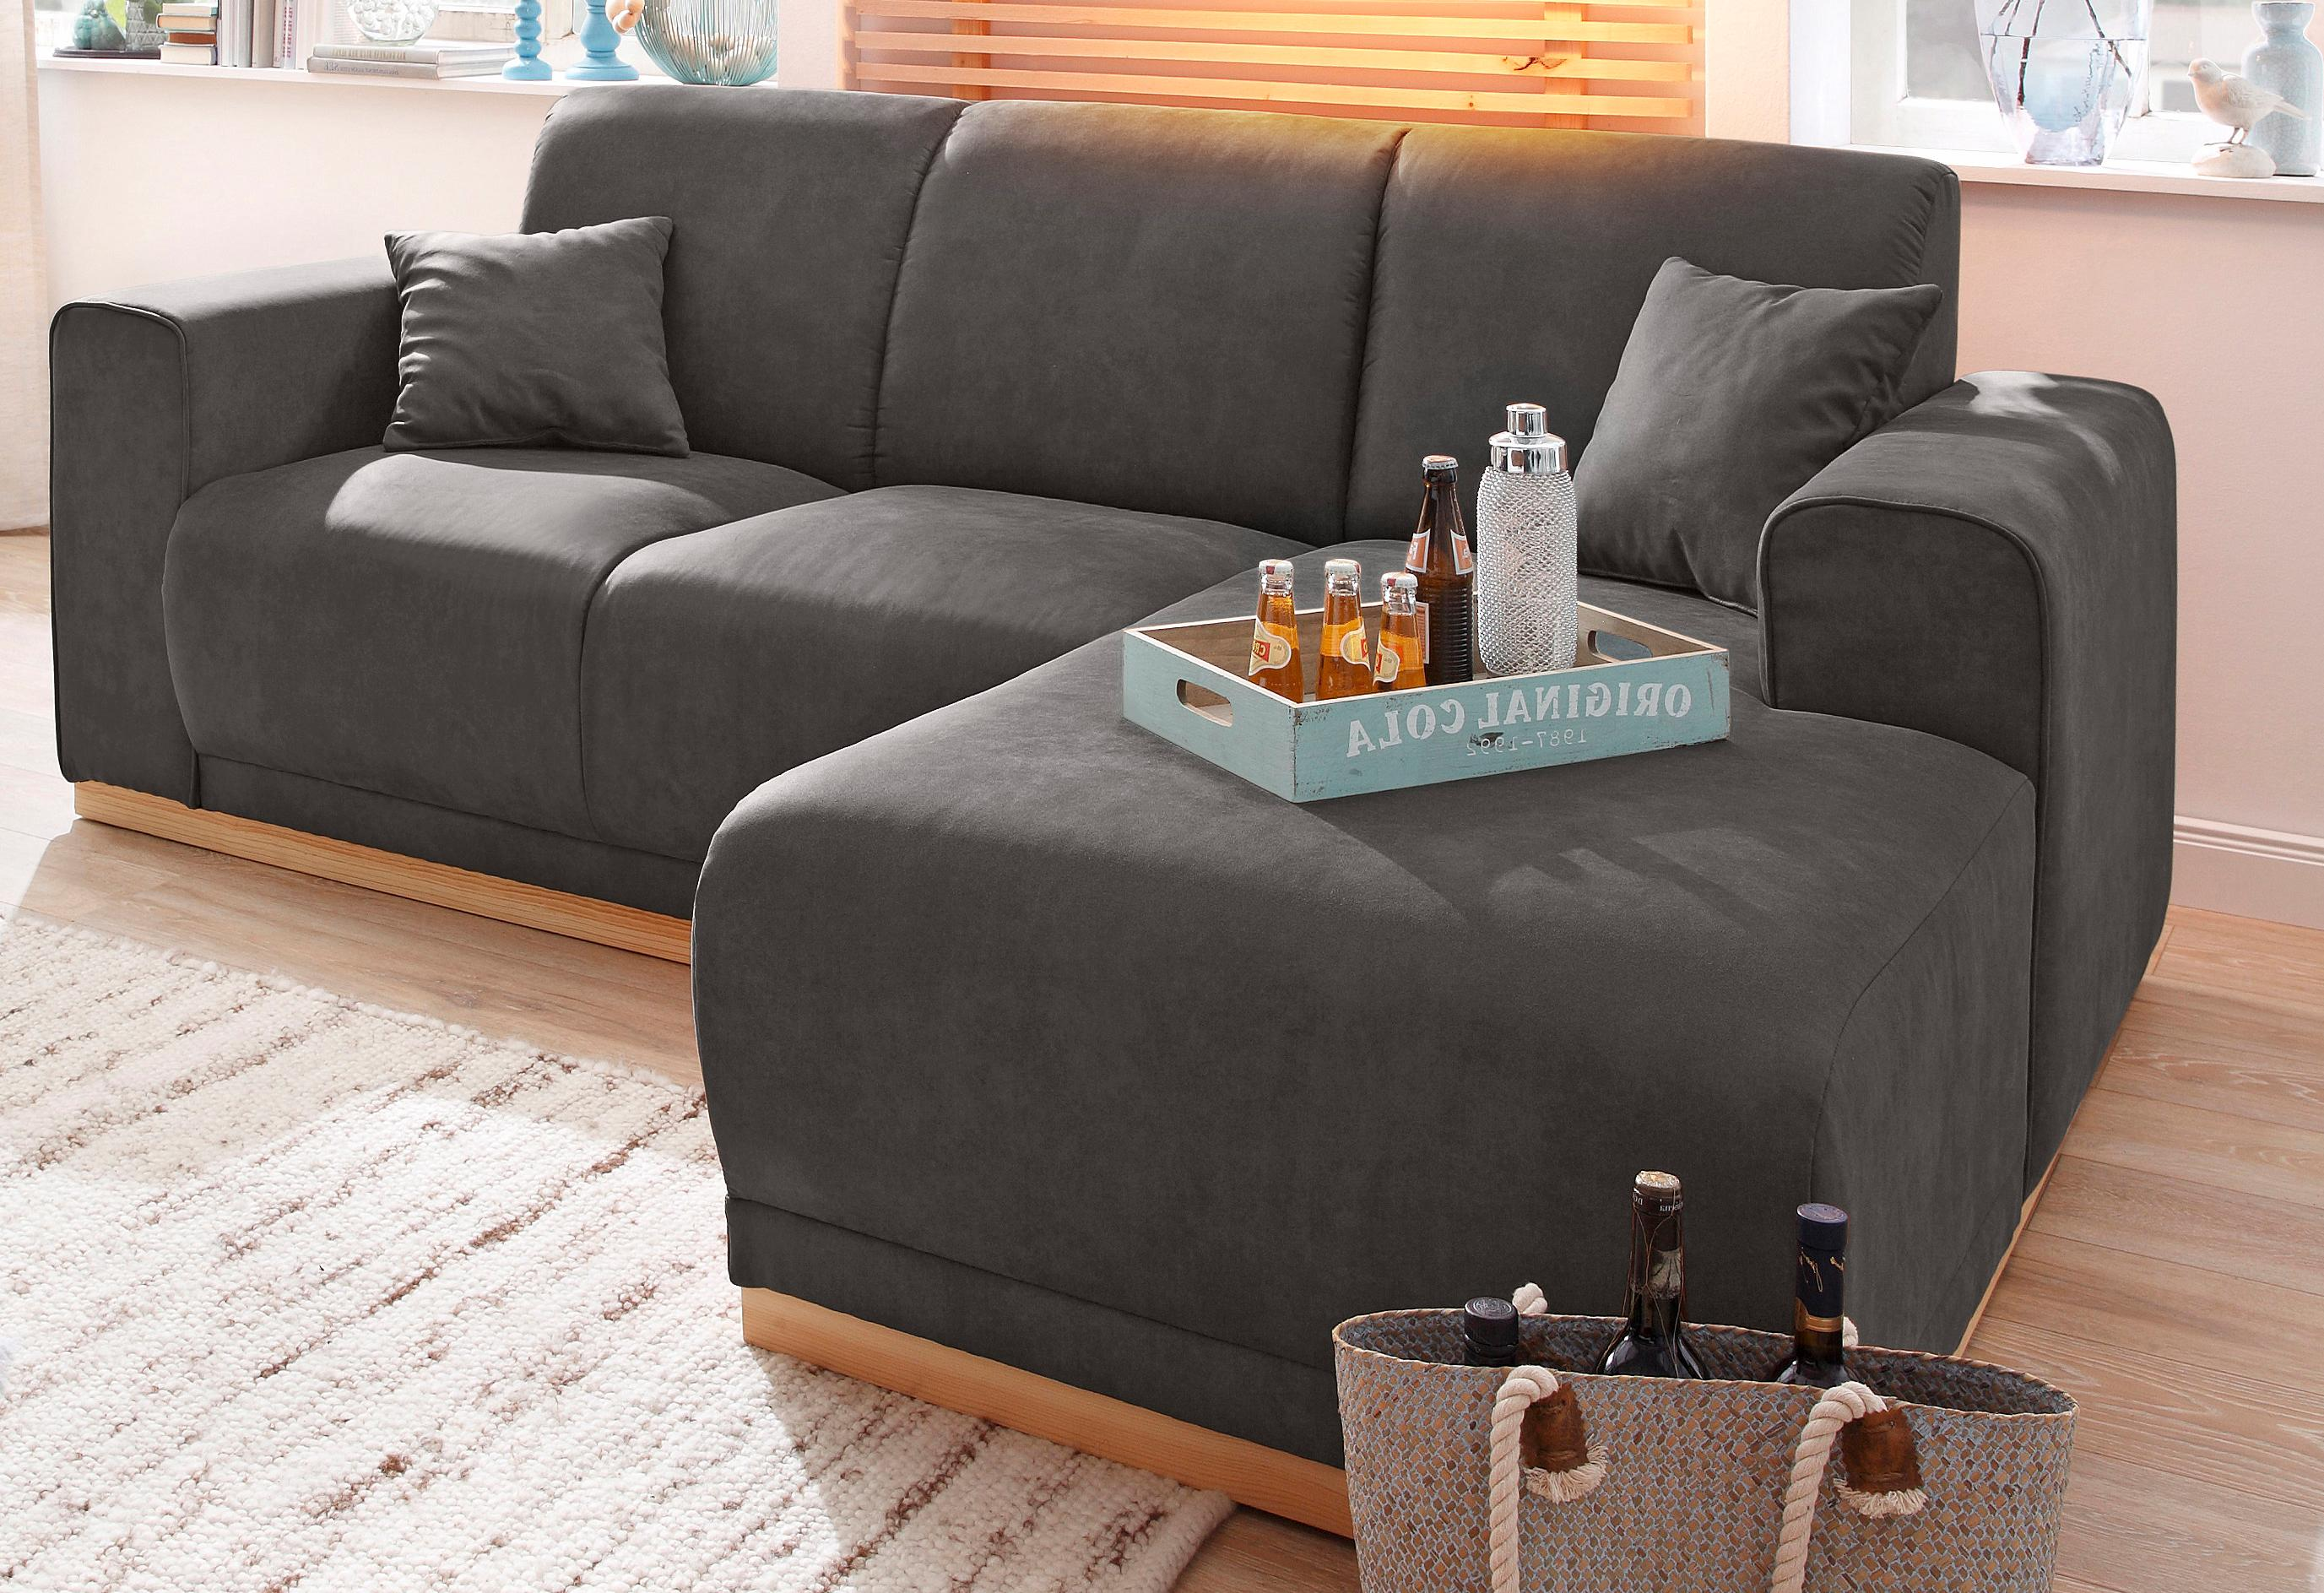 Home affaire Ecksofa Seeland